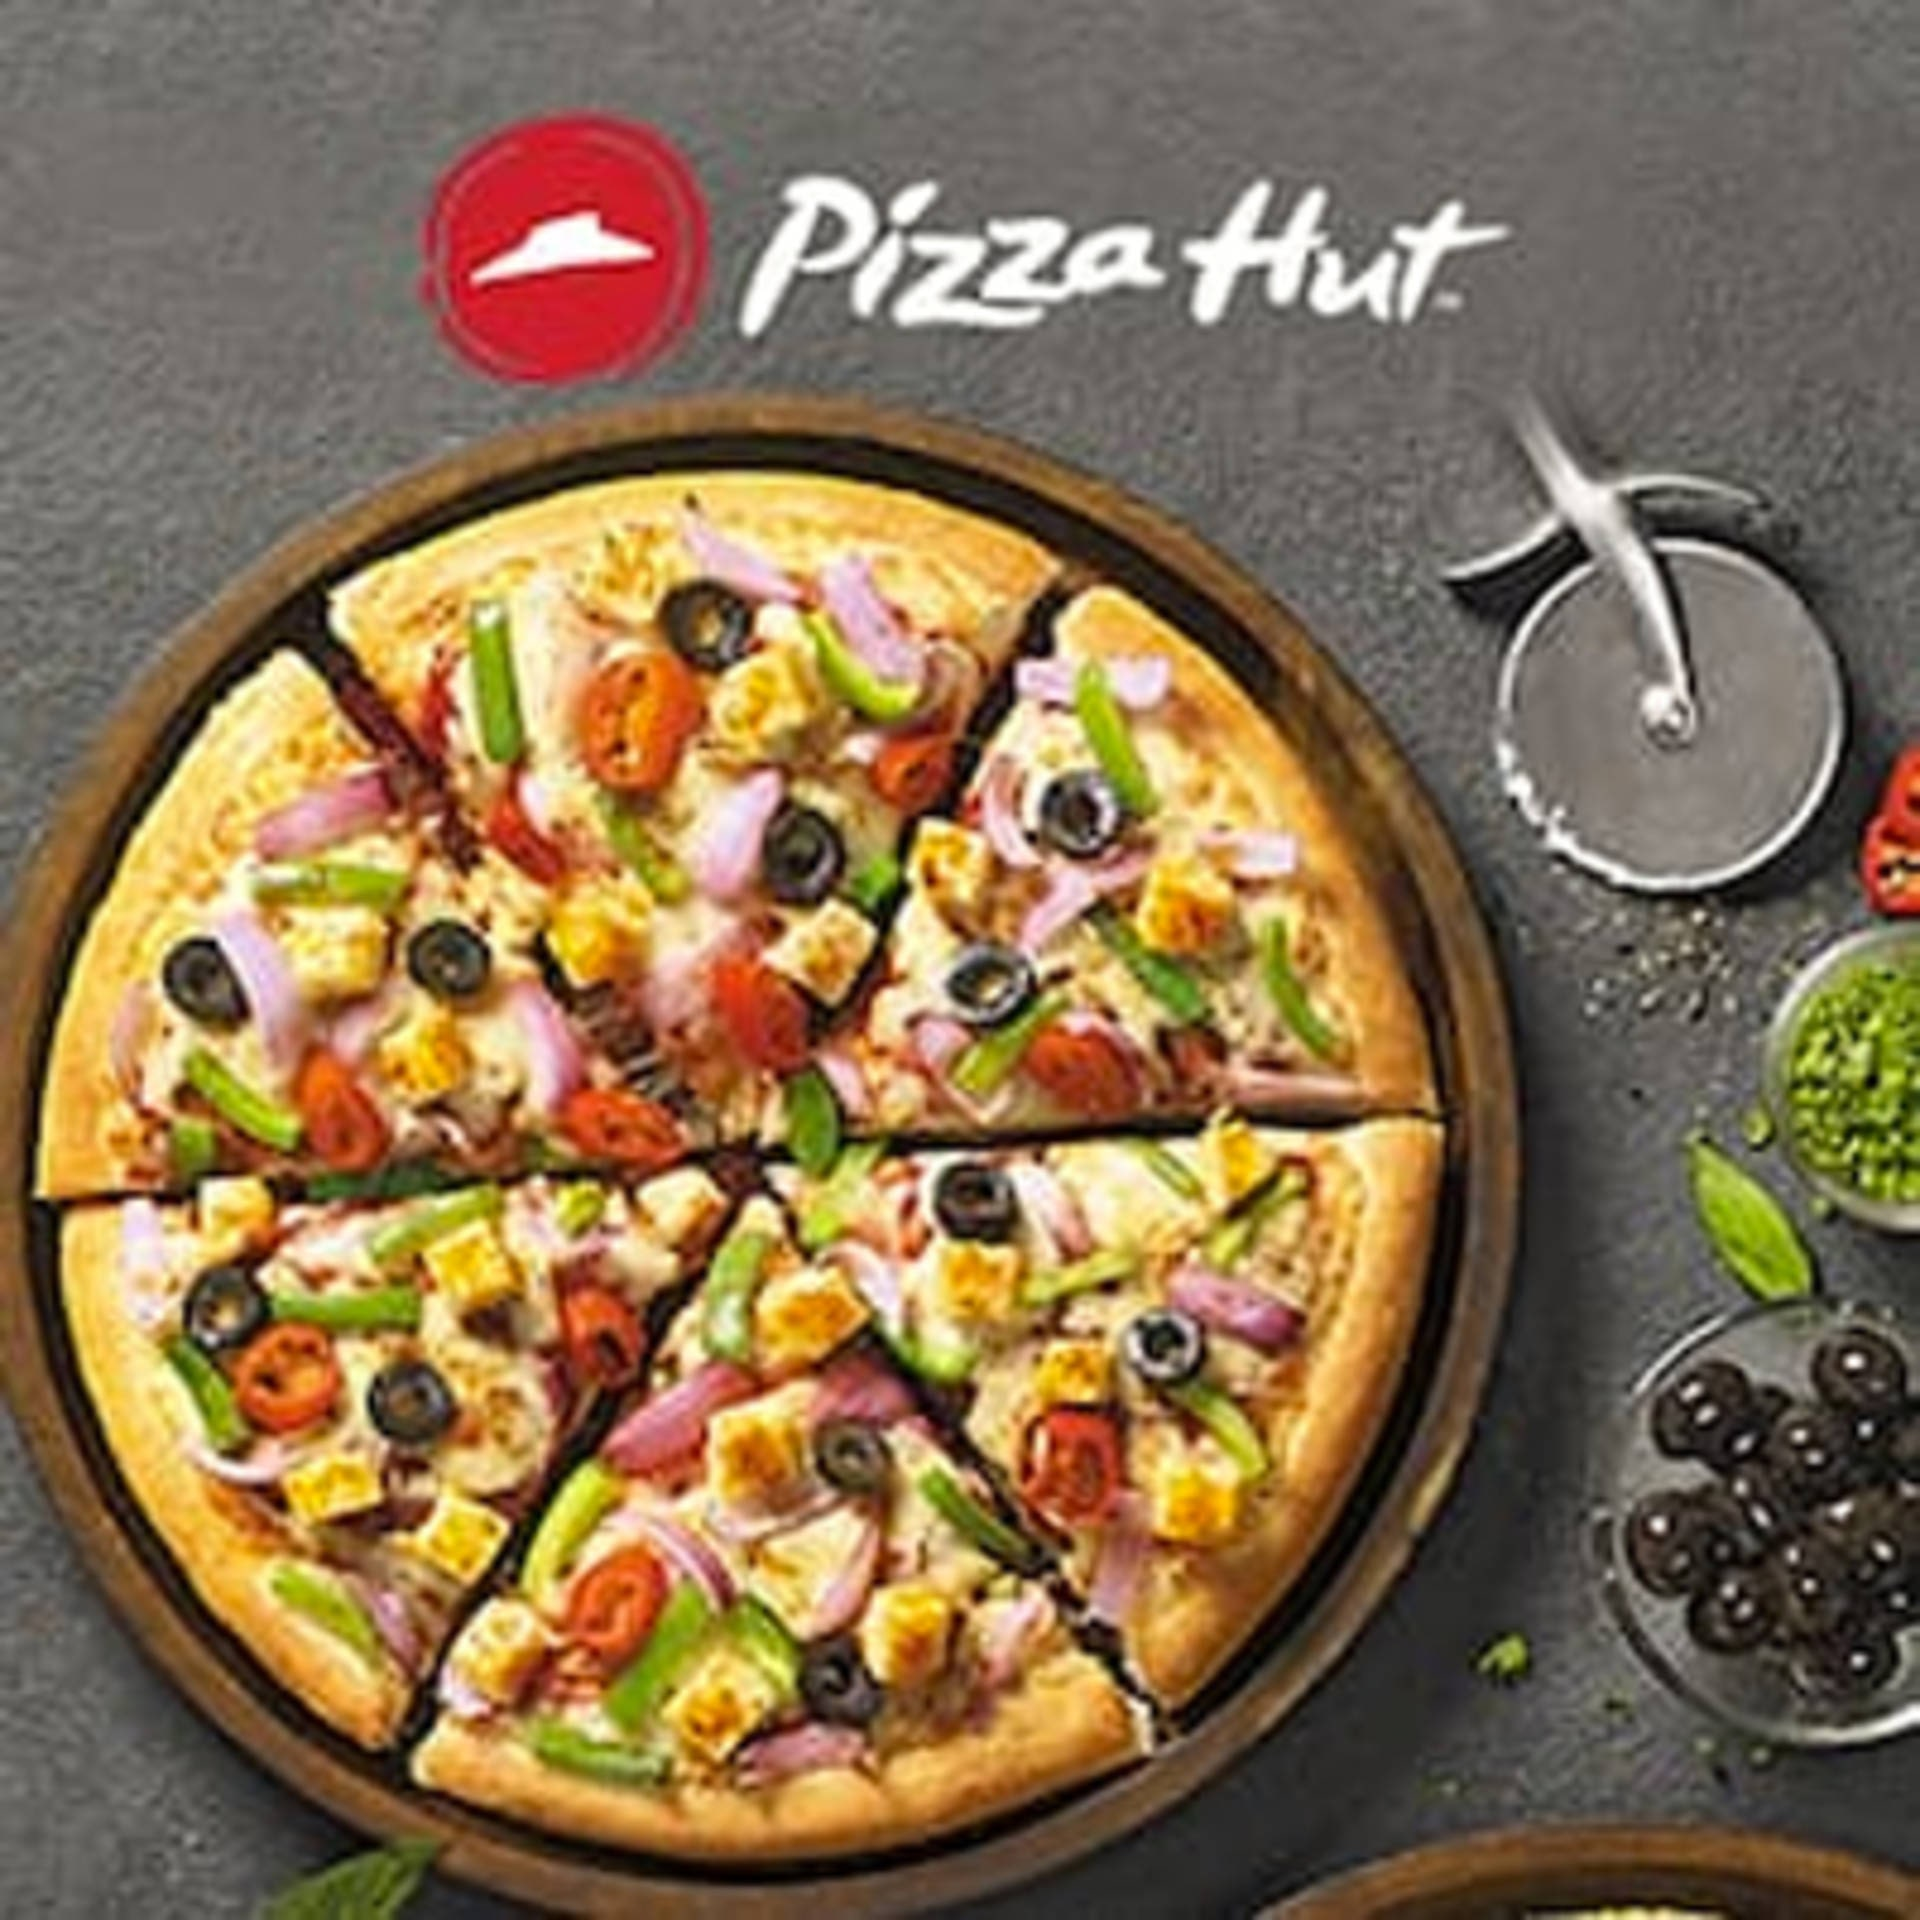 PizzaHut Open voucher worth Rs.500 @ Rs.300 After Cashback + 2 movie vouchers worth Rs.300